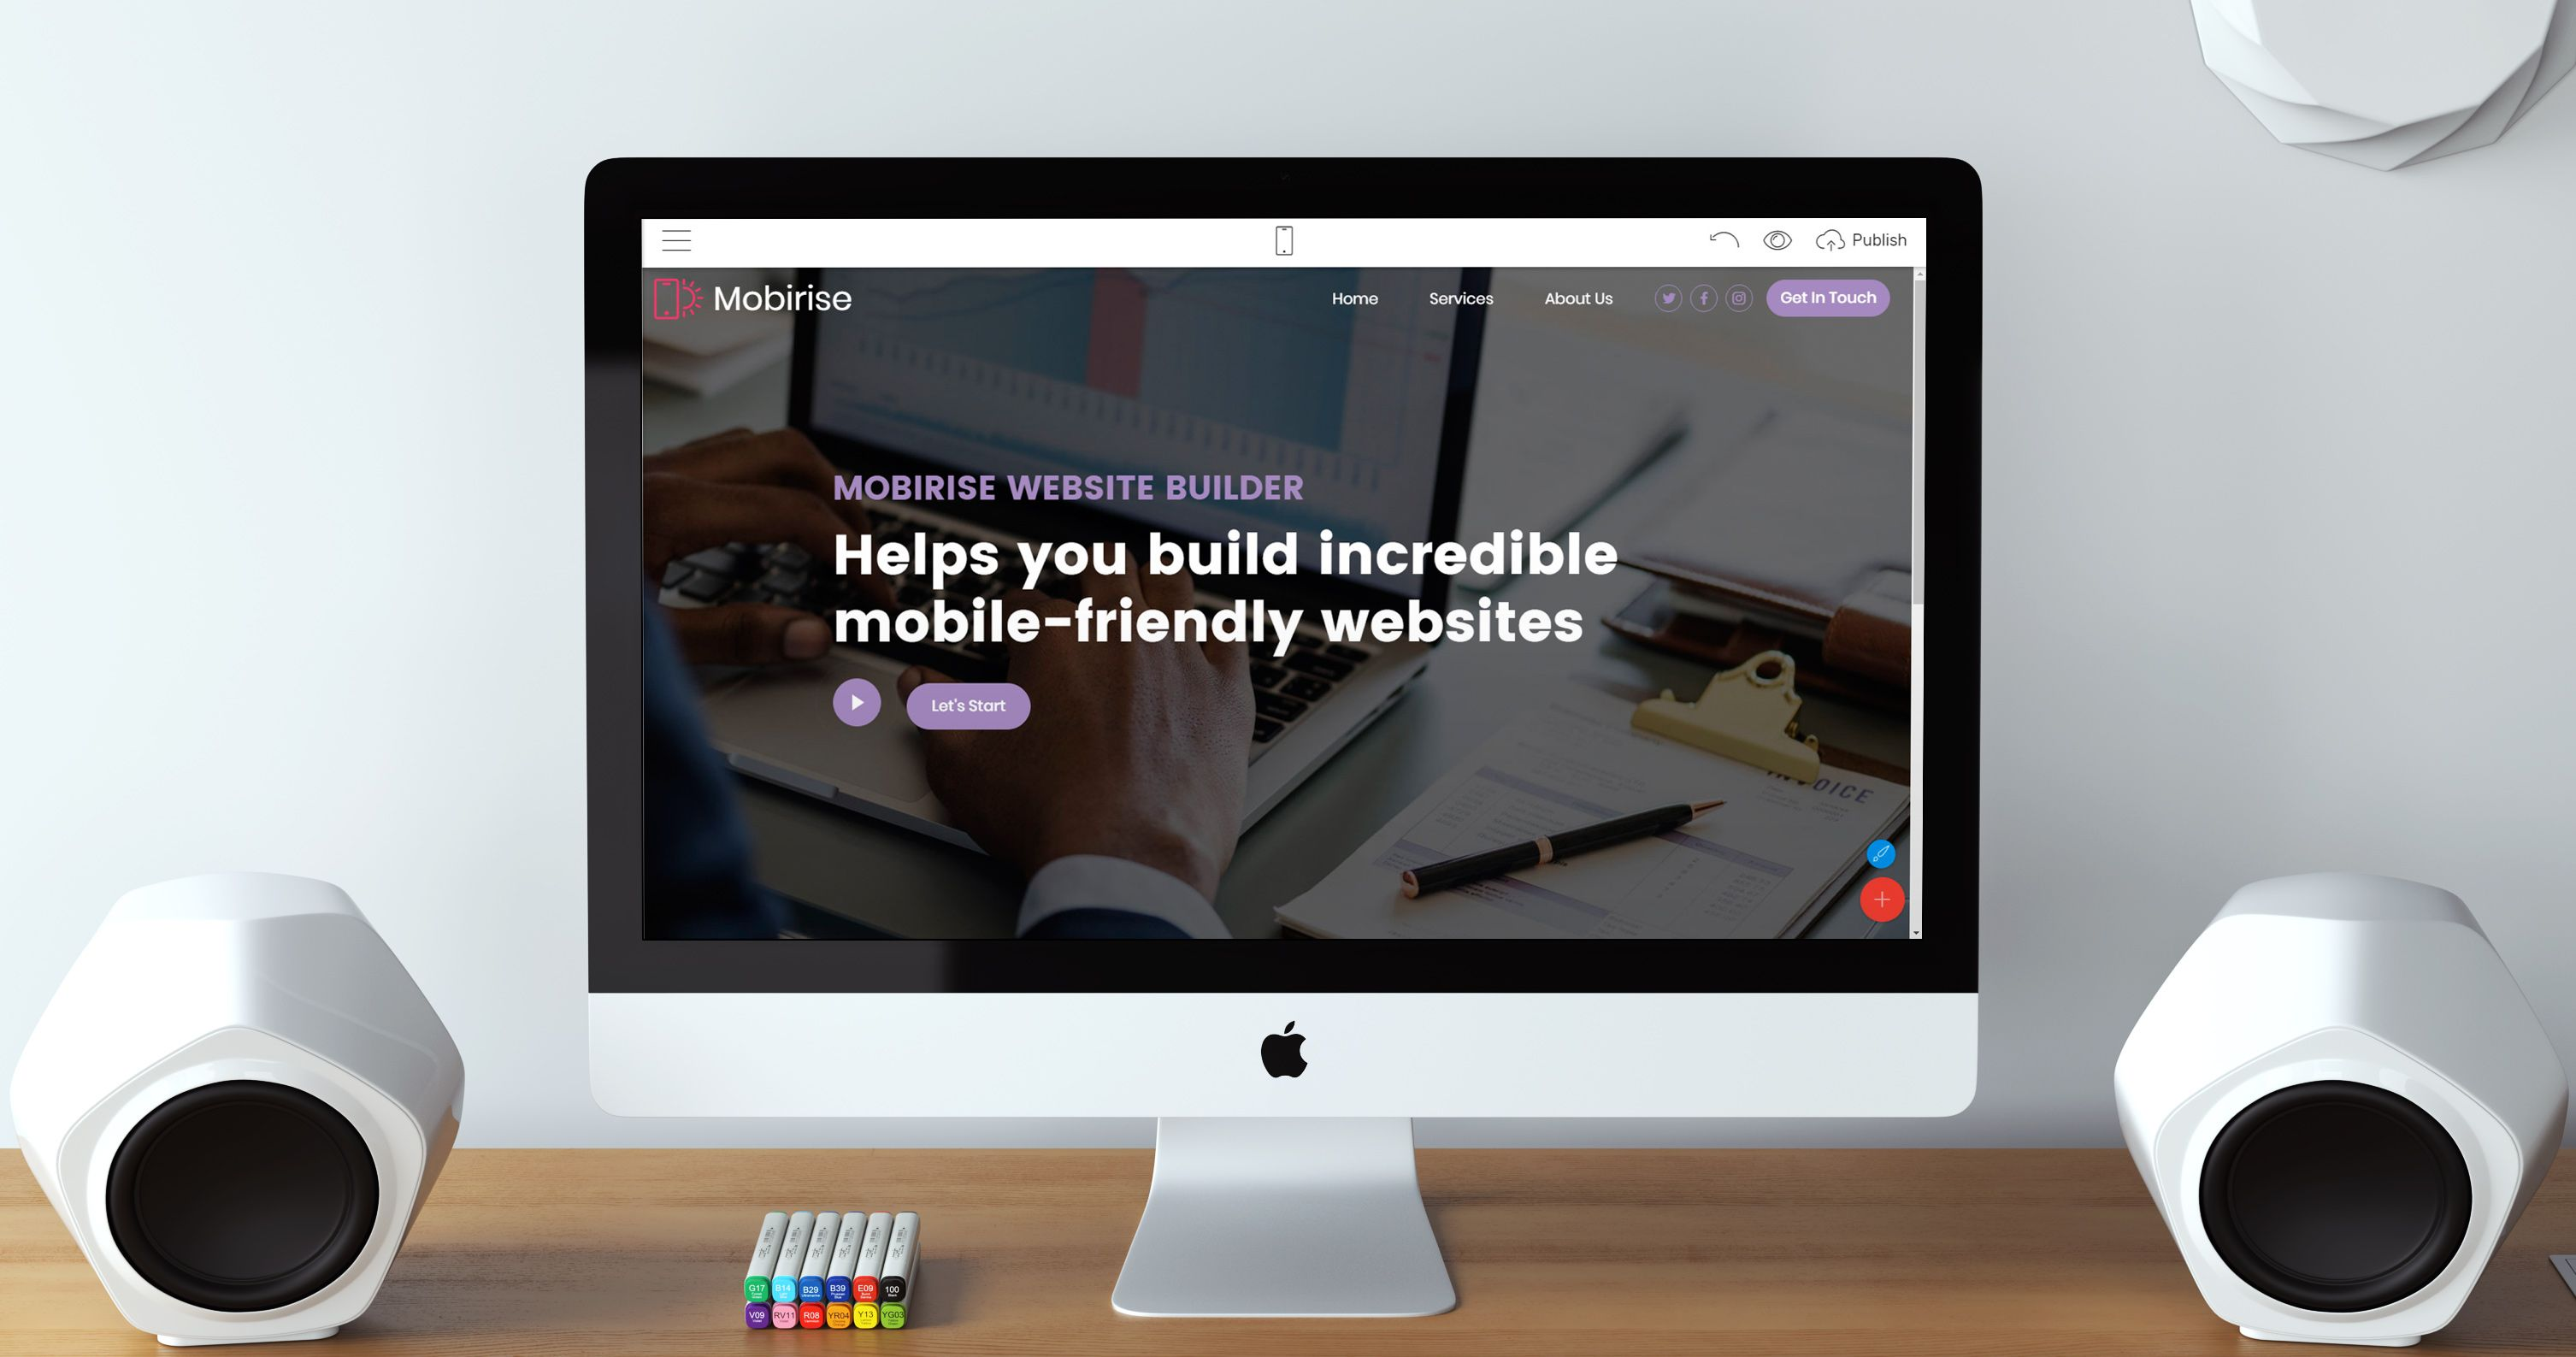 Mobirise HTML5 Website Creator 4.6.6 is out!  What's new: * Bug fixes for projects loading * AMP themes support improved * Image optimization improved * New app languages: French, Slovenian, Polish, Hungarian, Croatian